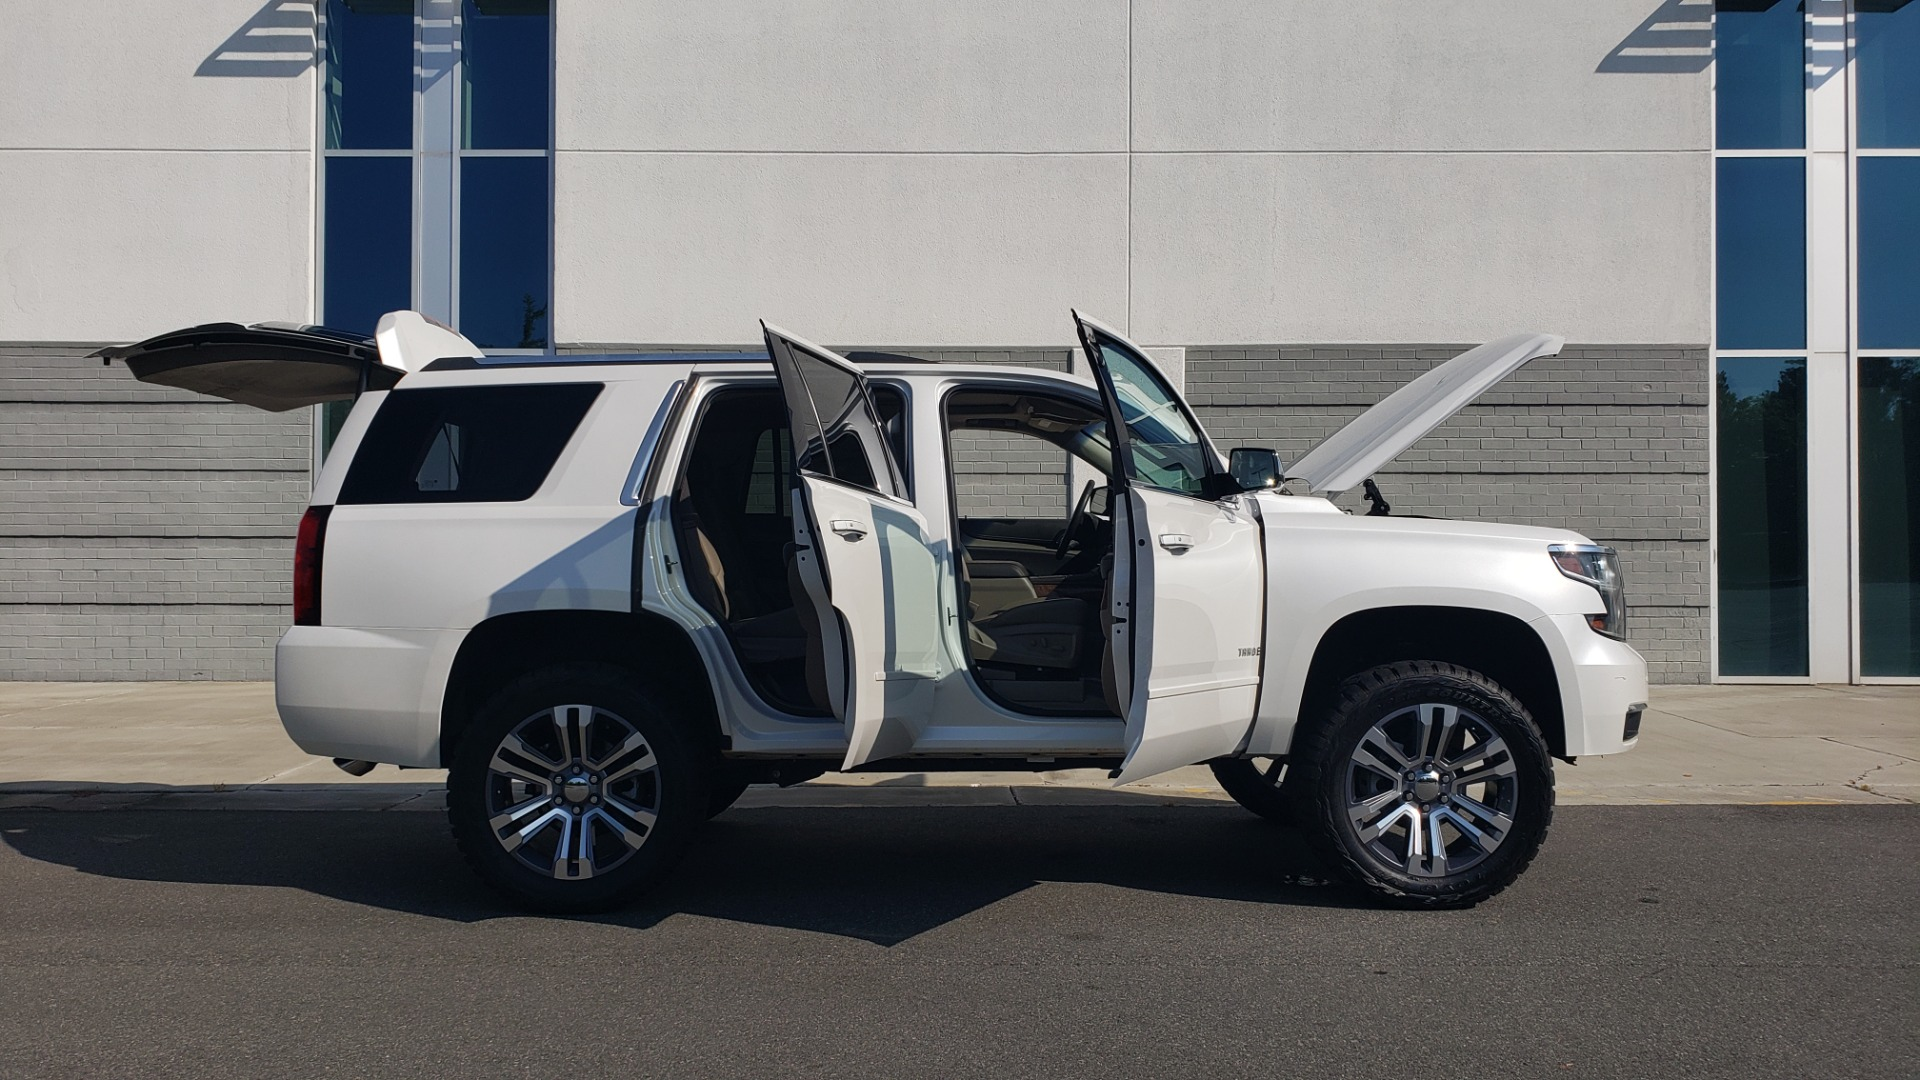 Used 2018 Chevrolet TAHOE PREMIER 4X4 / NAV / BOSE / SUNROOF / ENT SYS / 3-ROW / REARVIEW for sale $55,995 at Formula Imports in Charlotte NC 28227 11